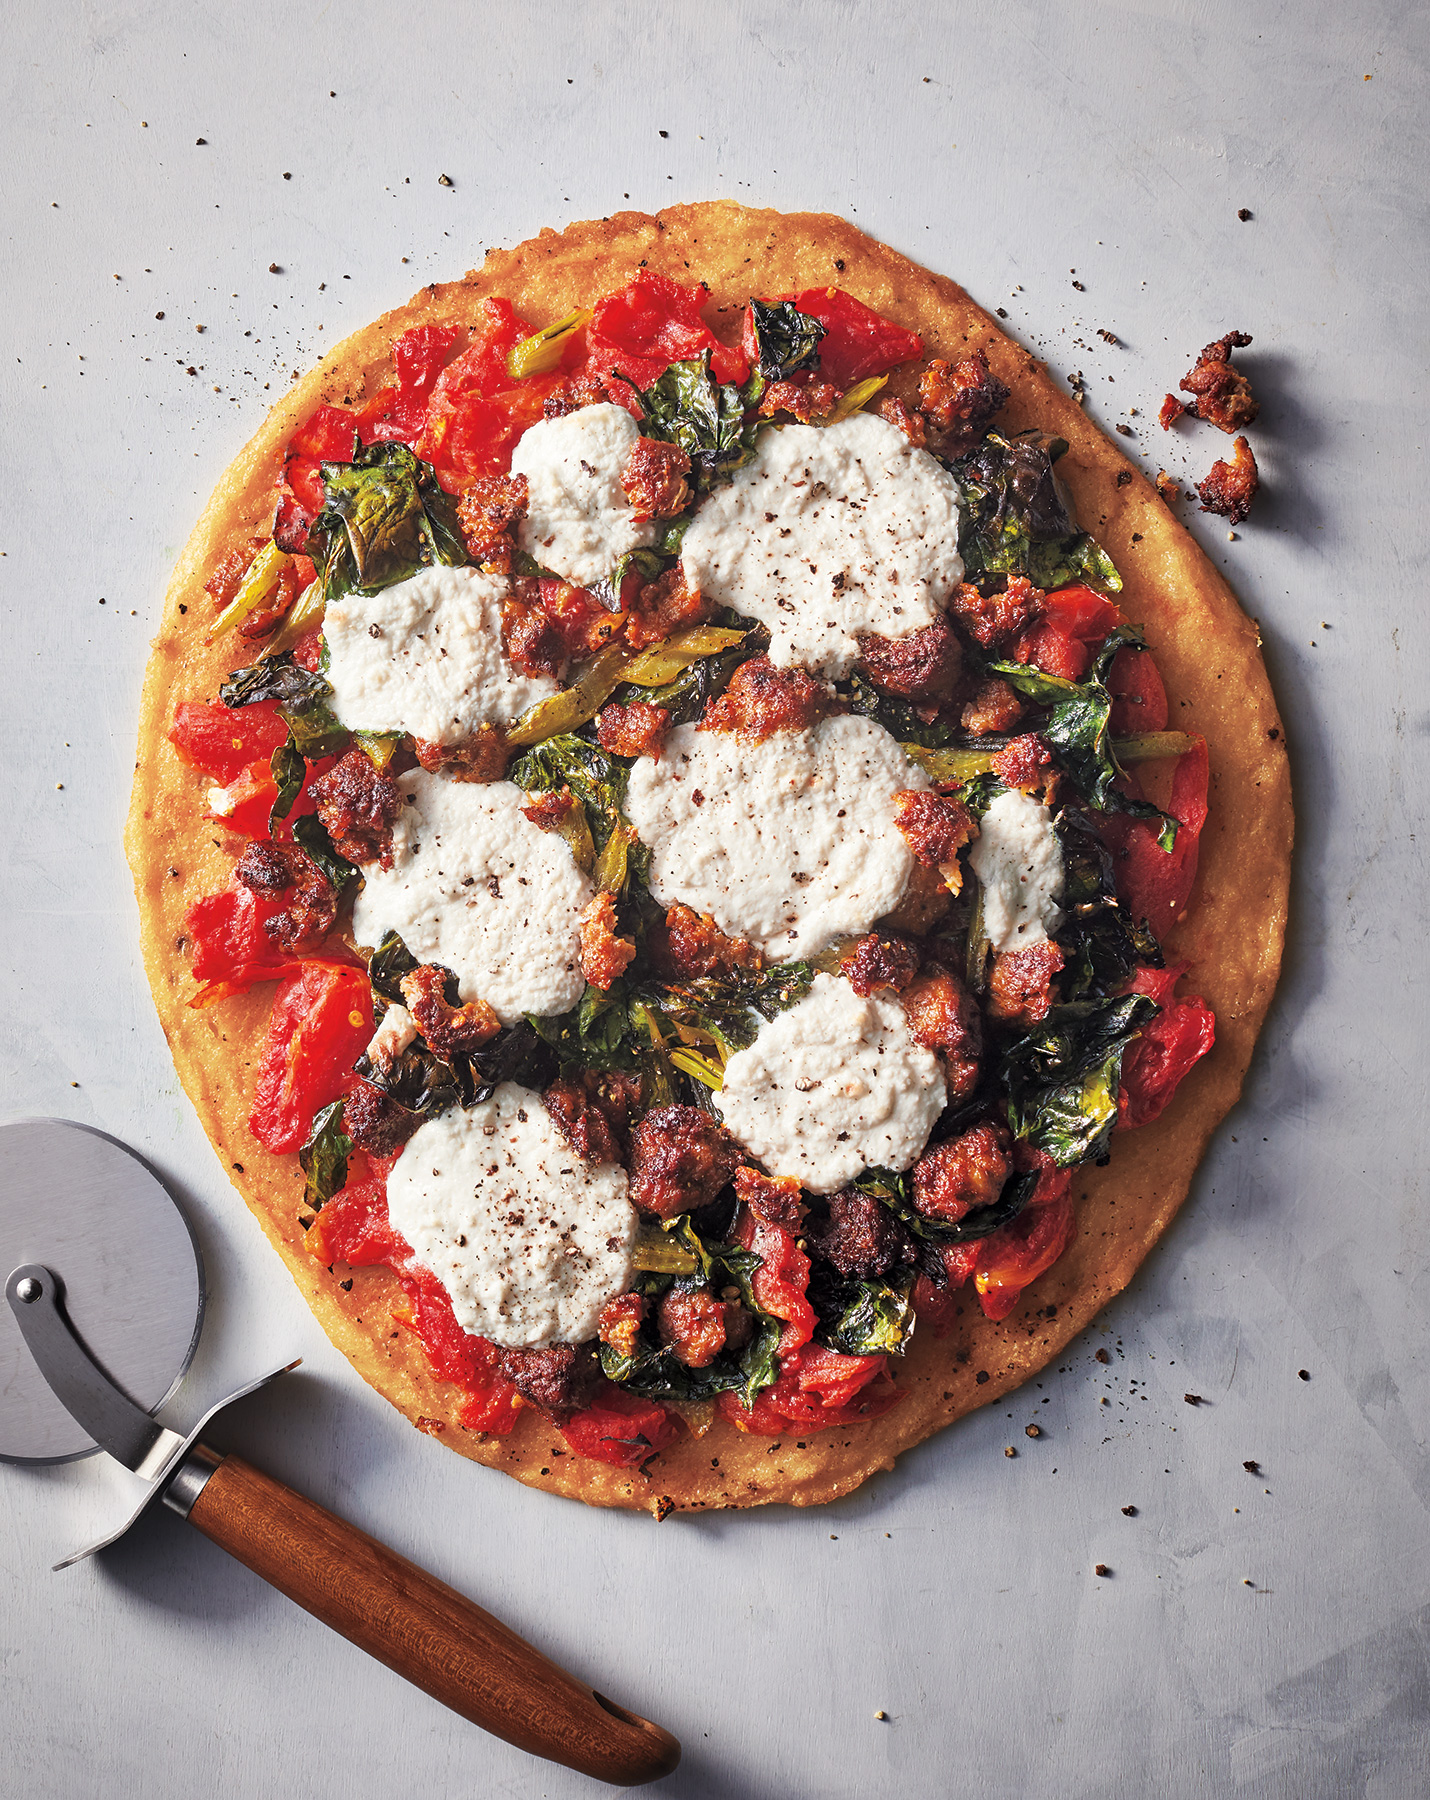 Polenta Pizza With Sausage, Swiss Chard, and Ricotta